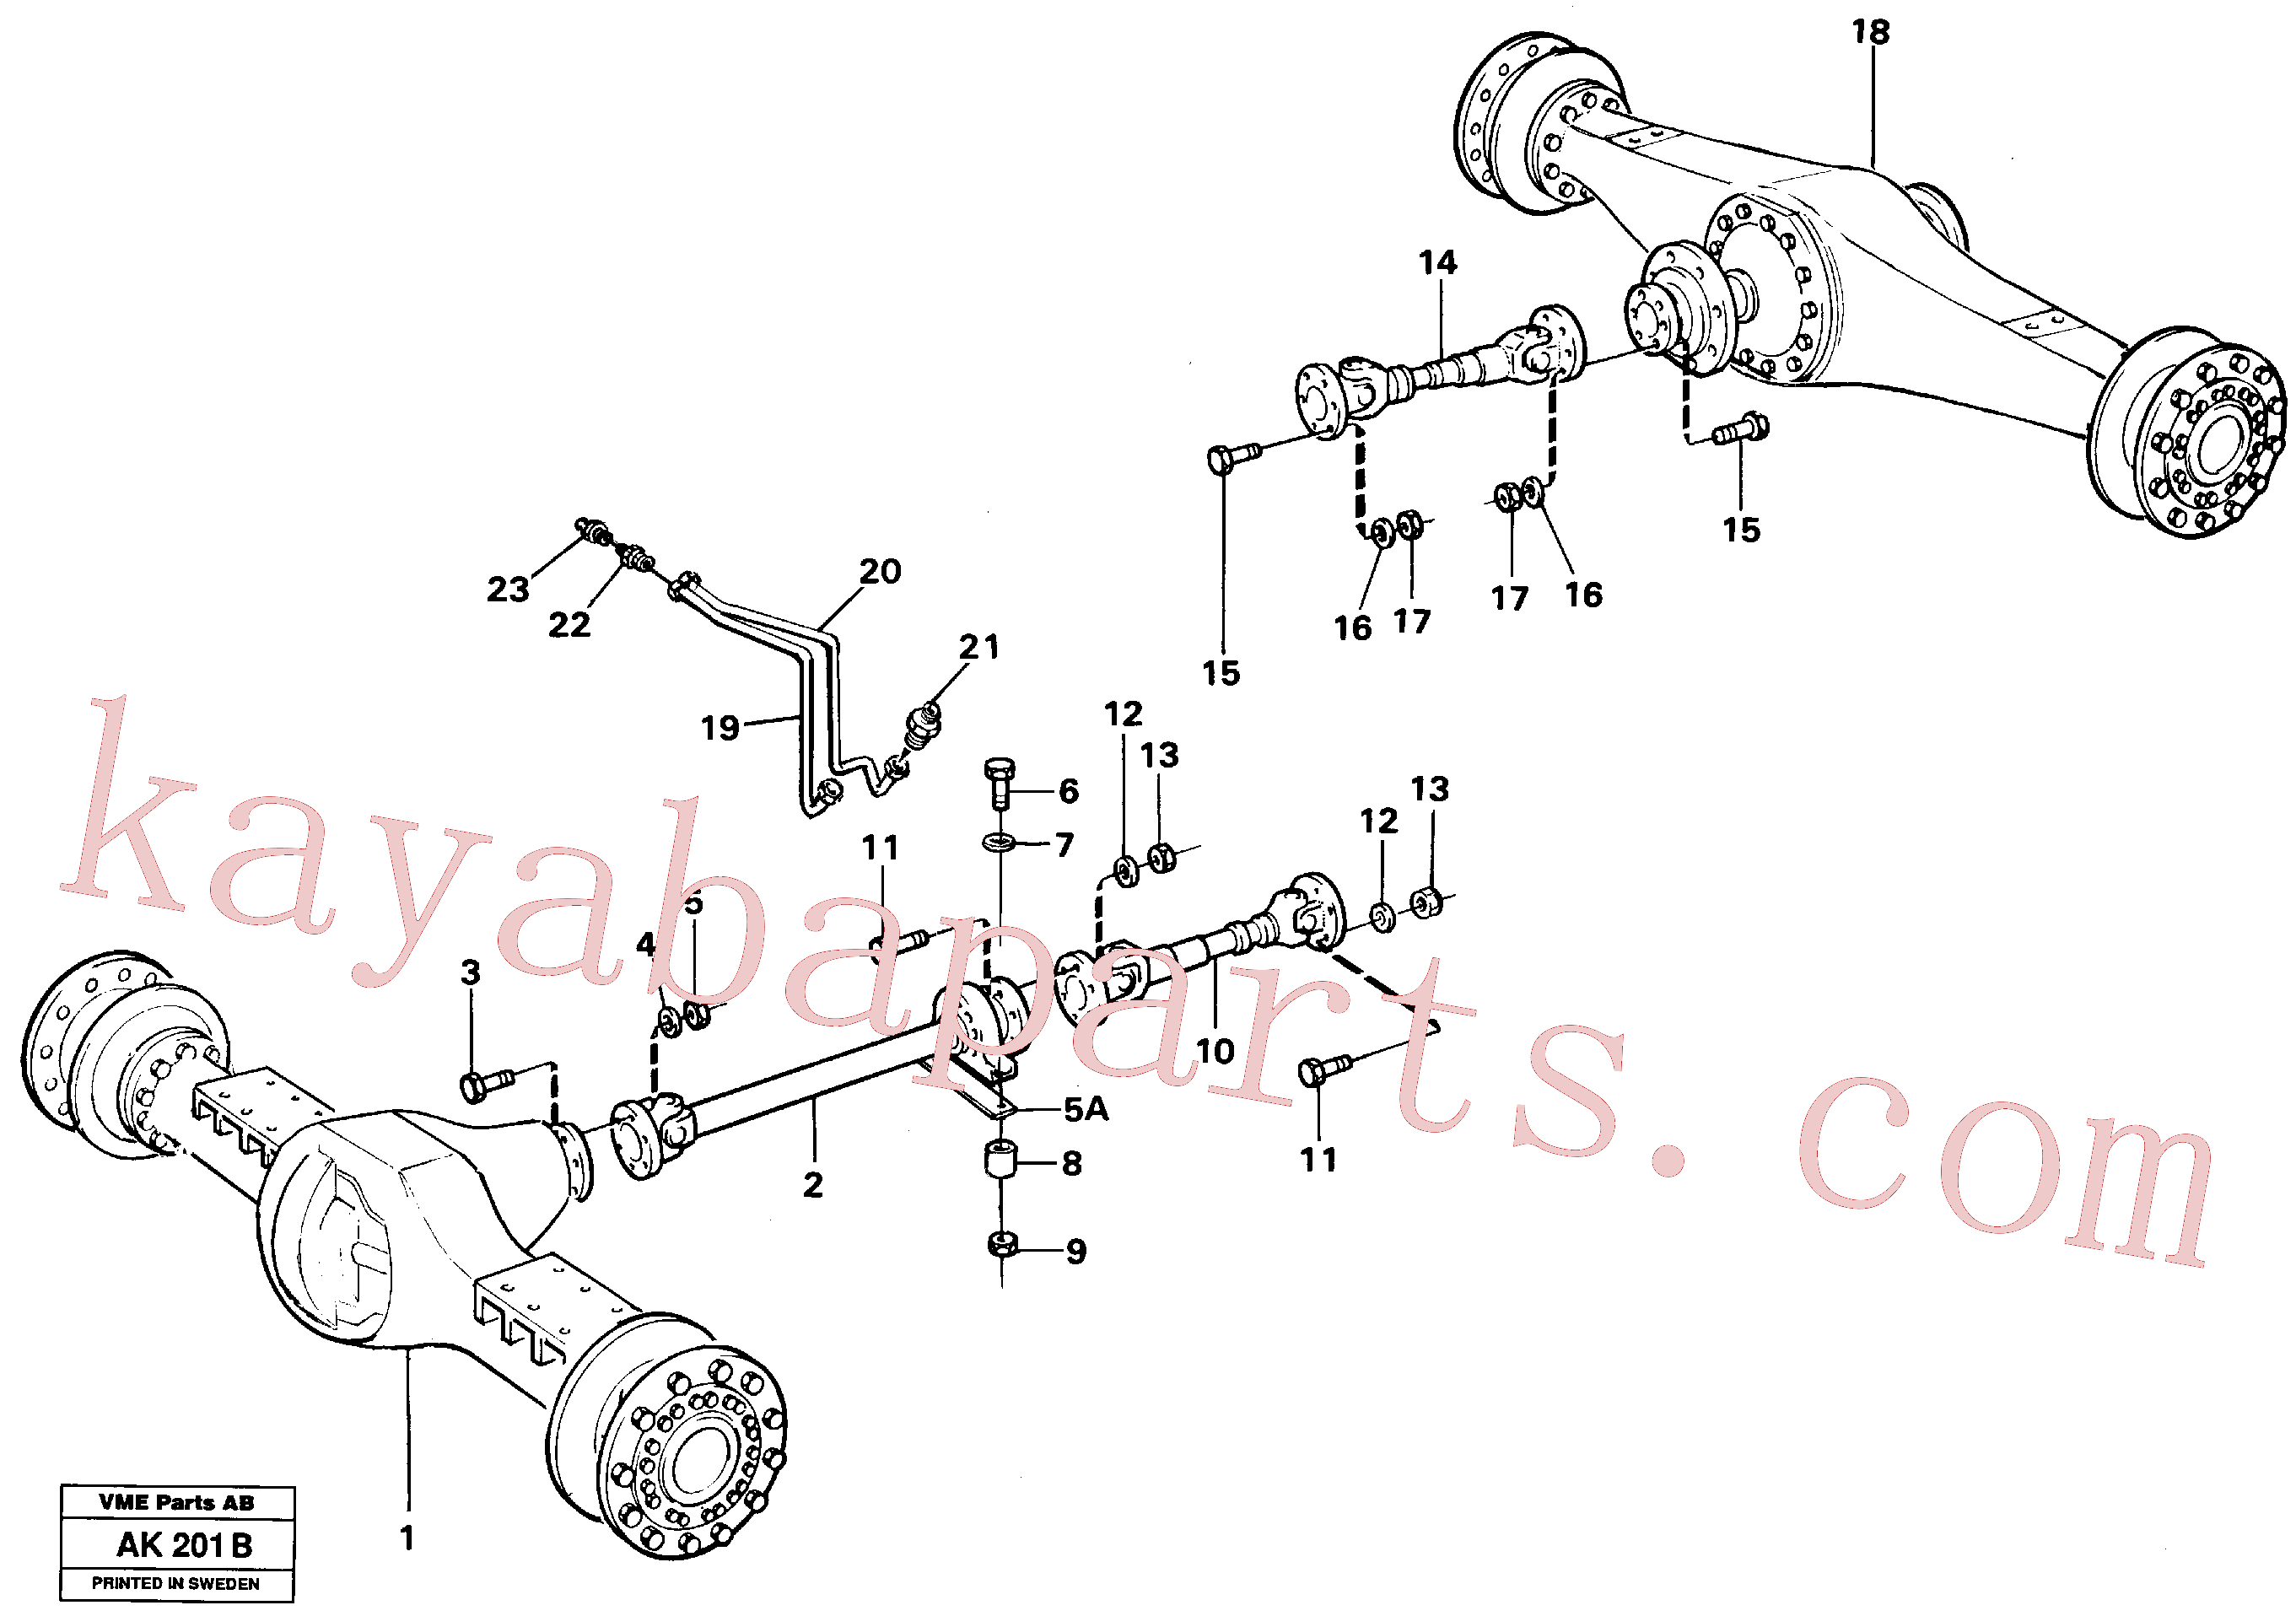 VOE11026356 for Volvo Propeller shafts with fitting parts(AK201B assembly)